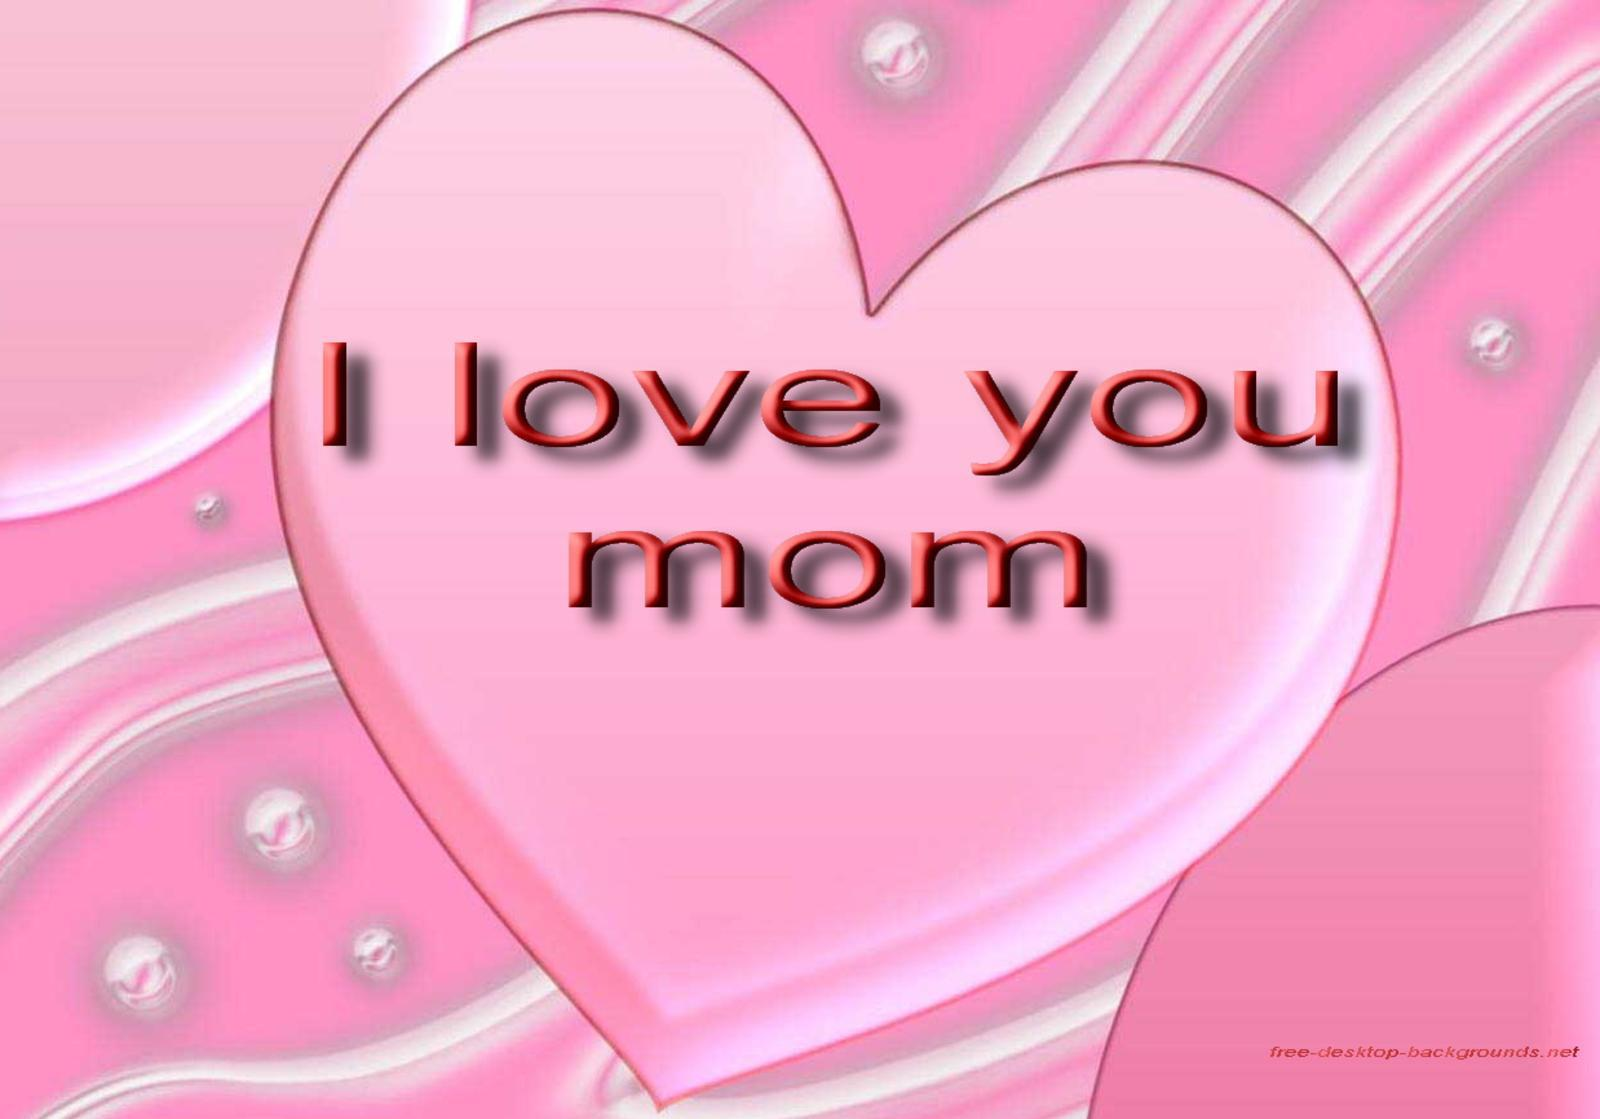 love mom mothers day desktop wallpaper 757